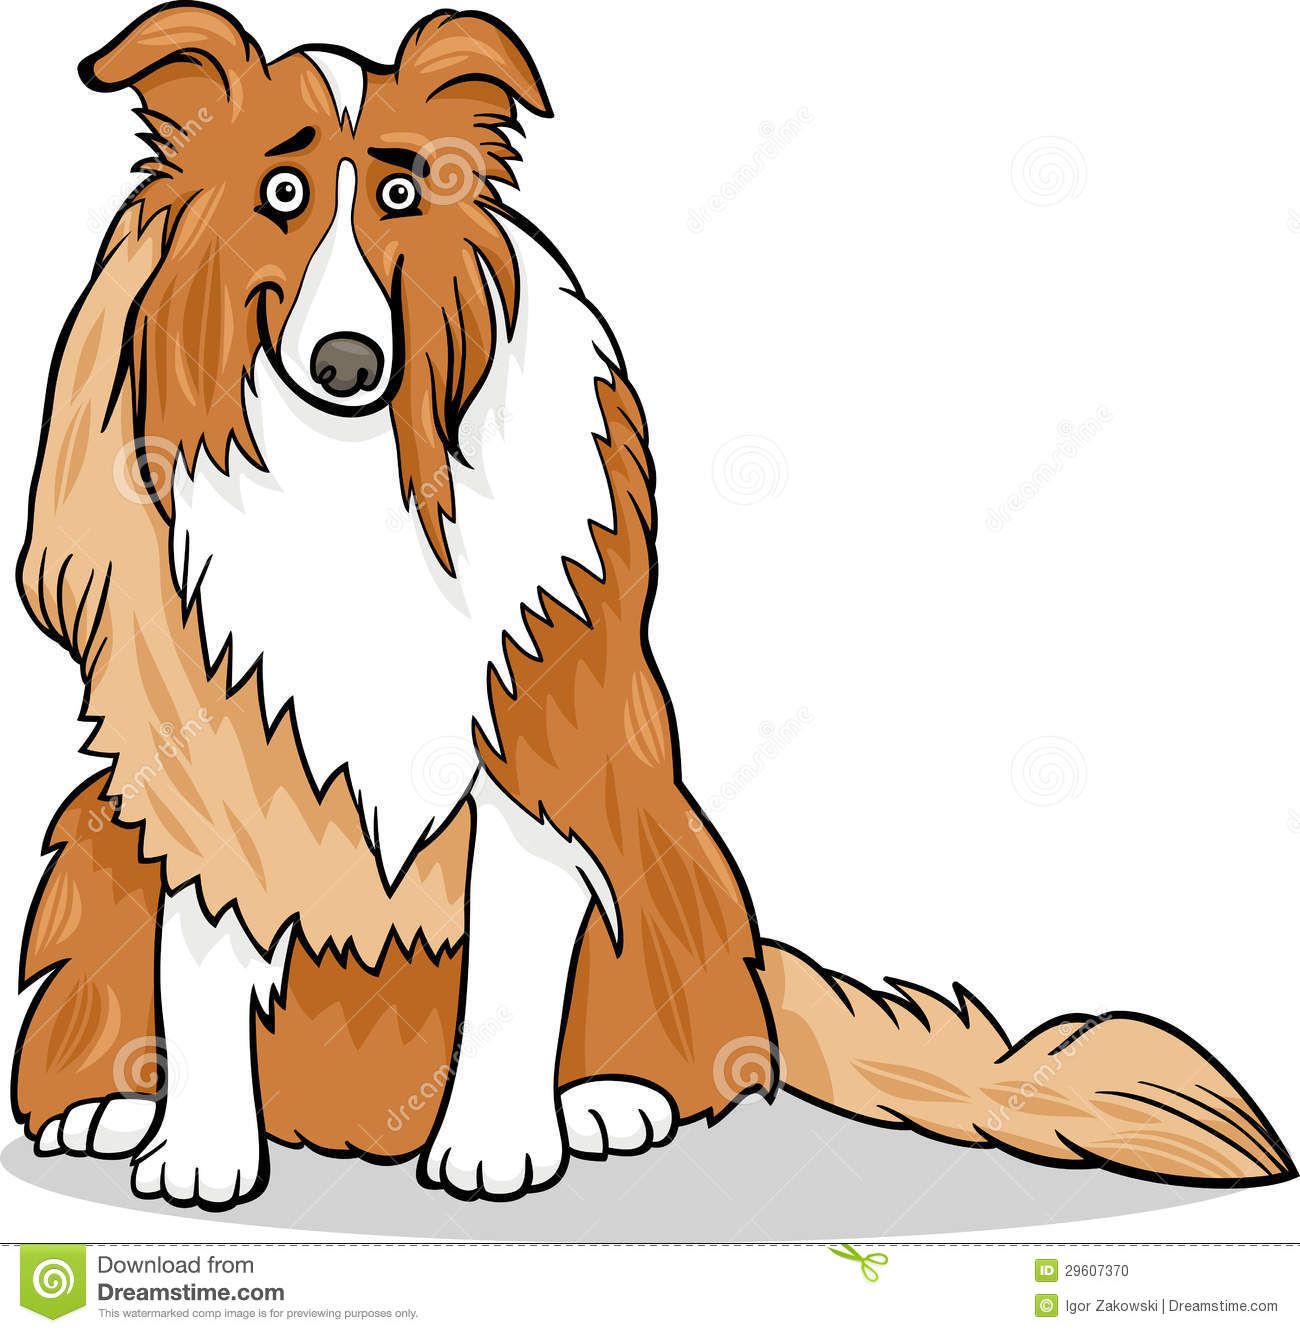 how to tell if a dog is purebred